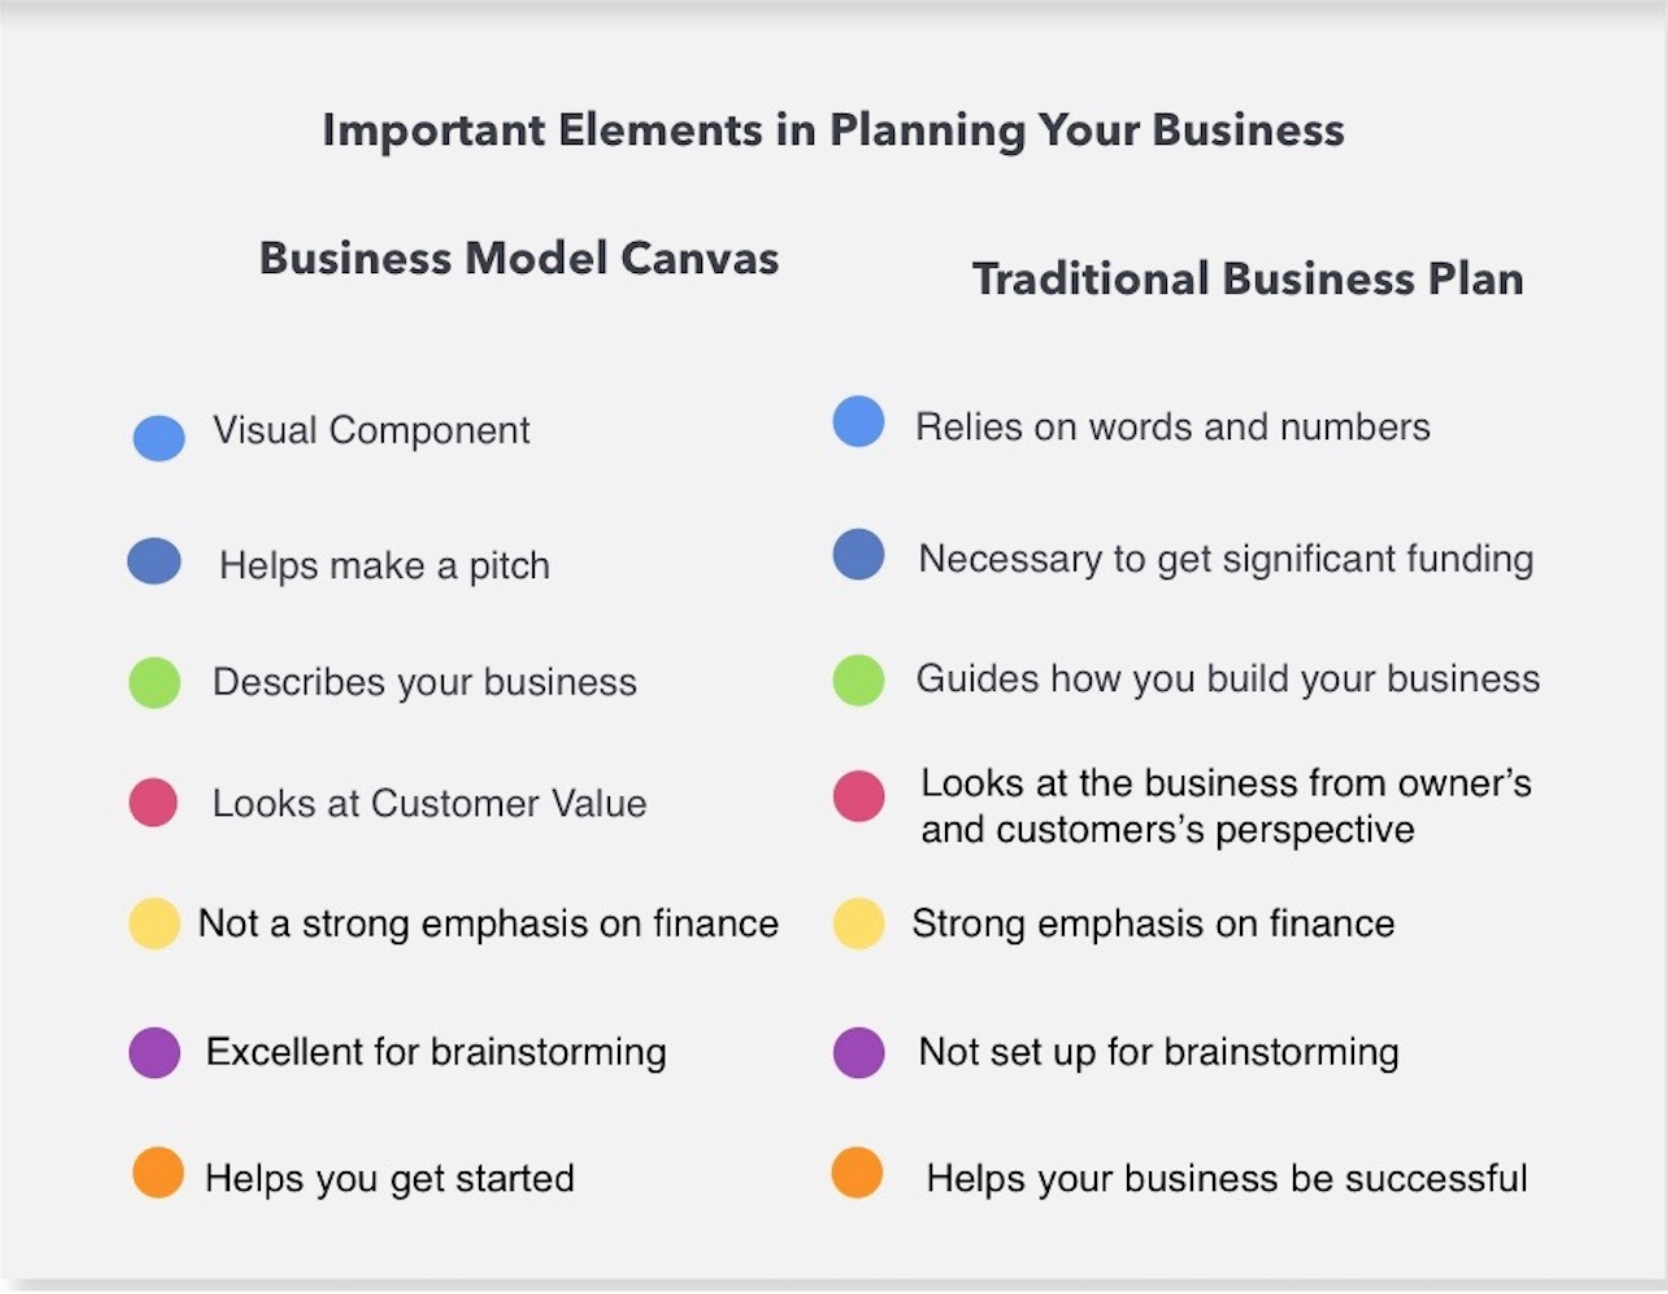 Important Elements in Planning Your Business